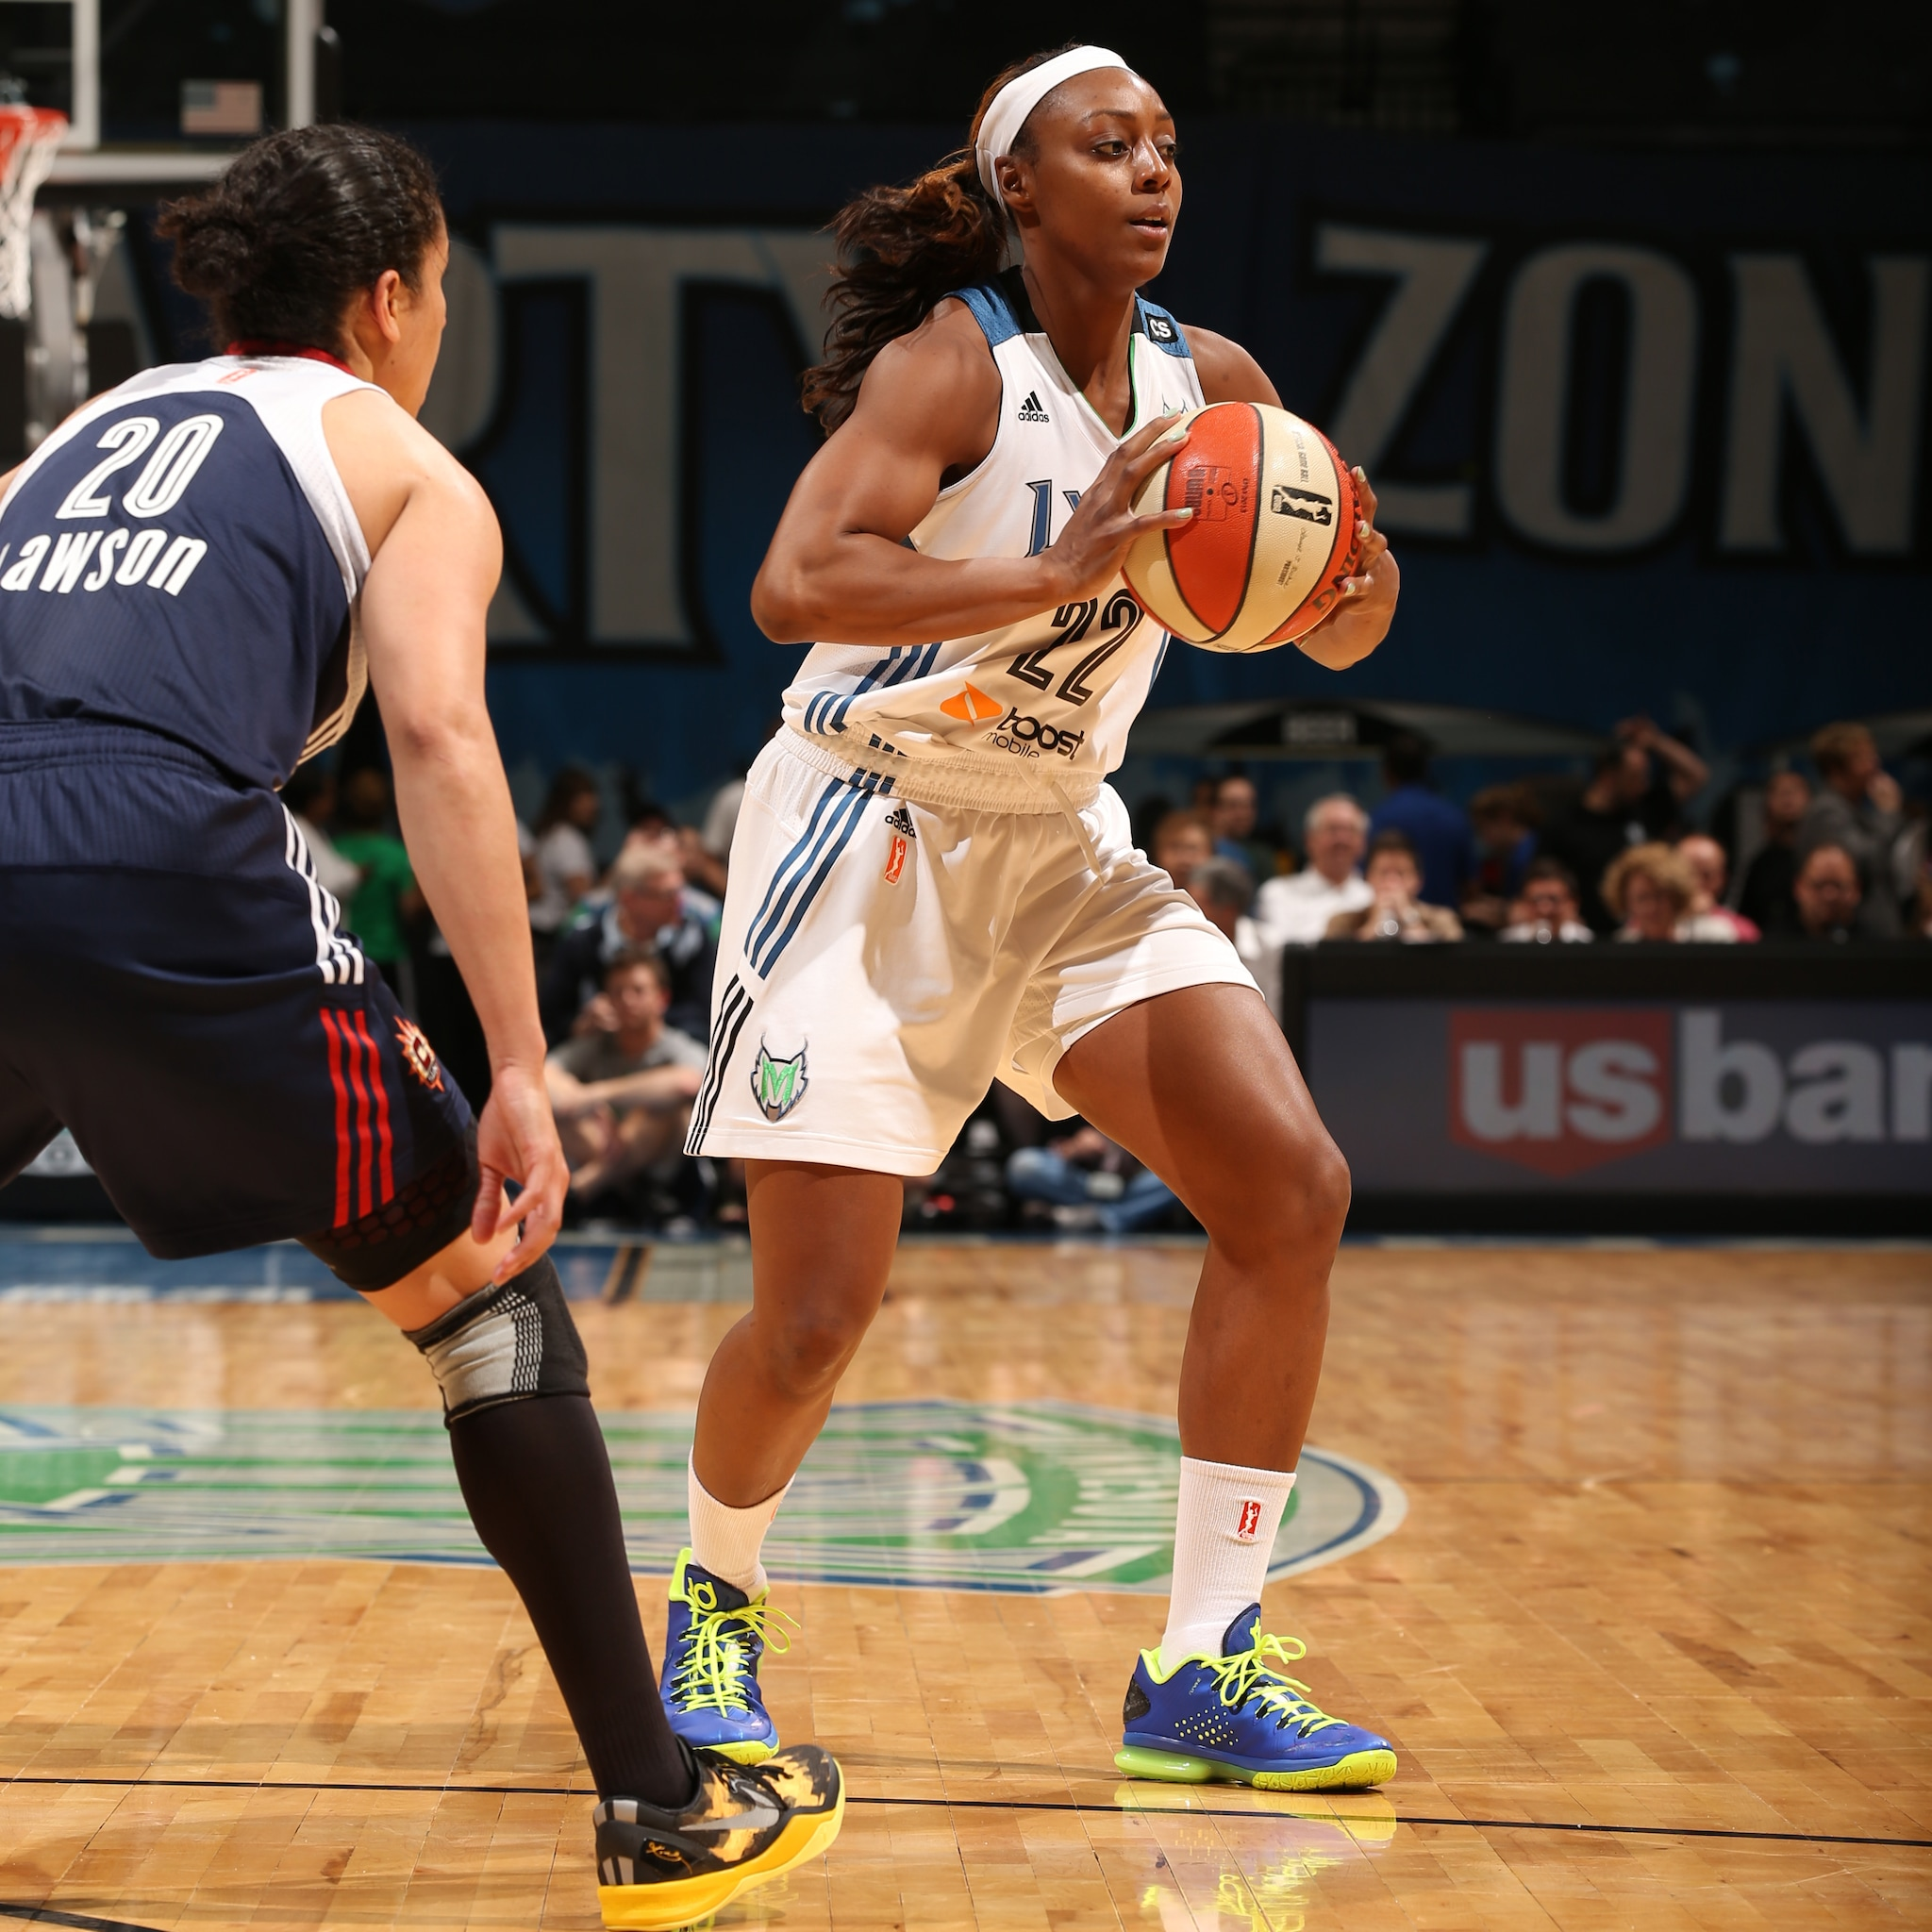 2013's Home-Opener: Lynx forward Monica Wright had a solid night off the bench scoring nine points while adding six rebounds, five assists and two steals in the win.